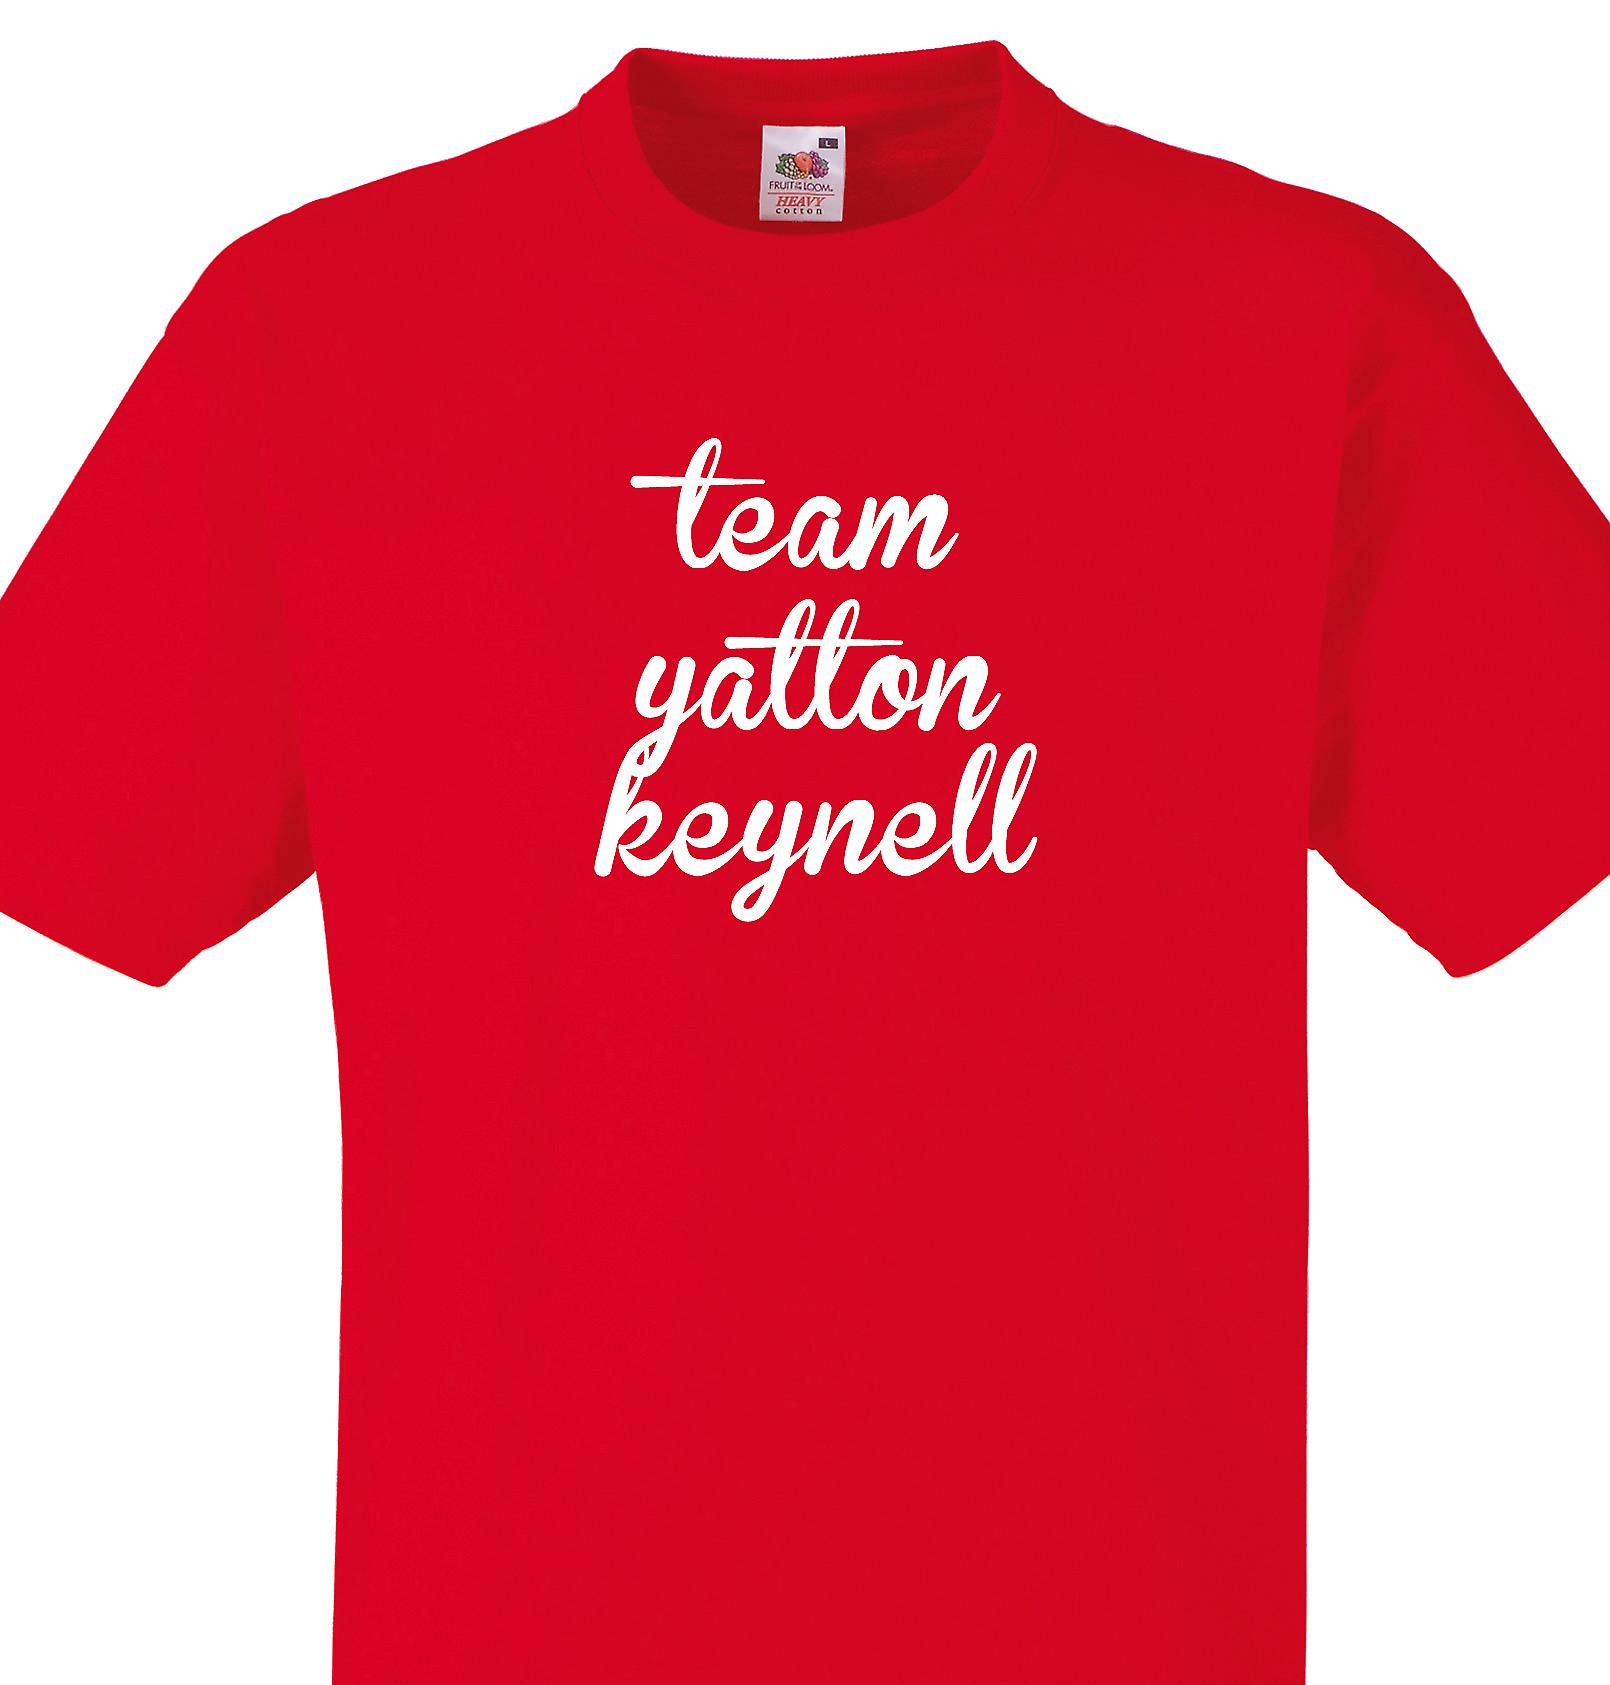 Team Yatton keynell Red T shirt